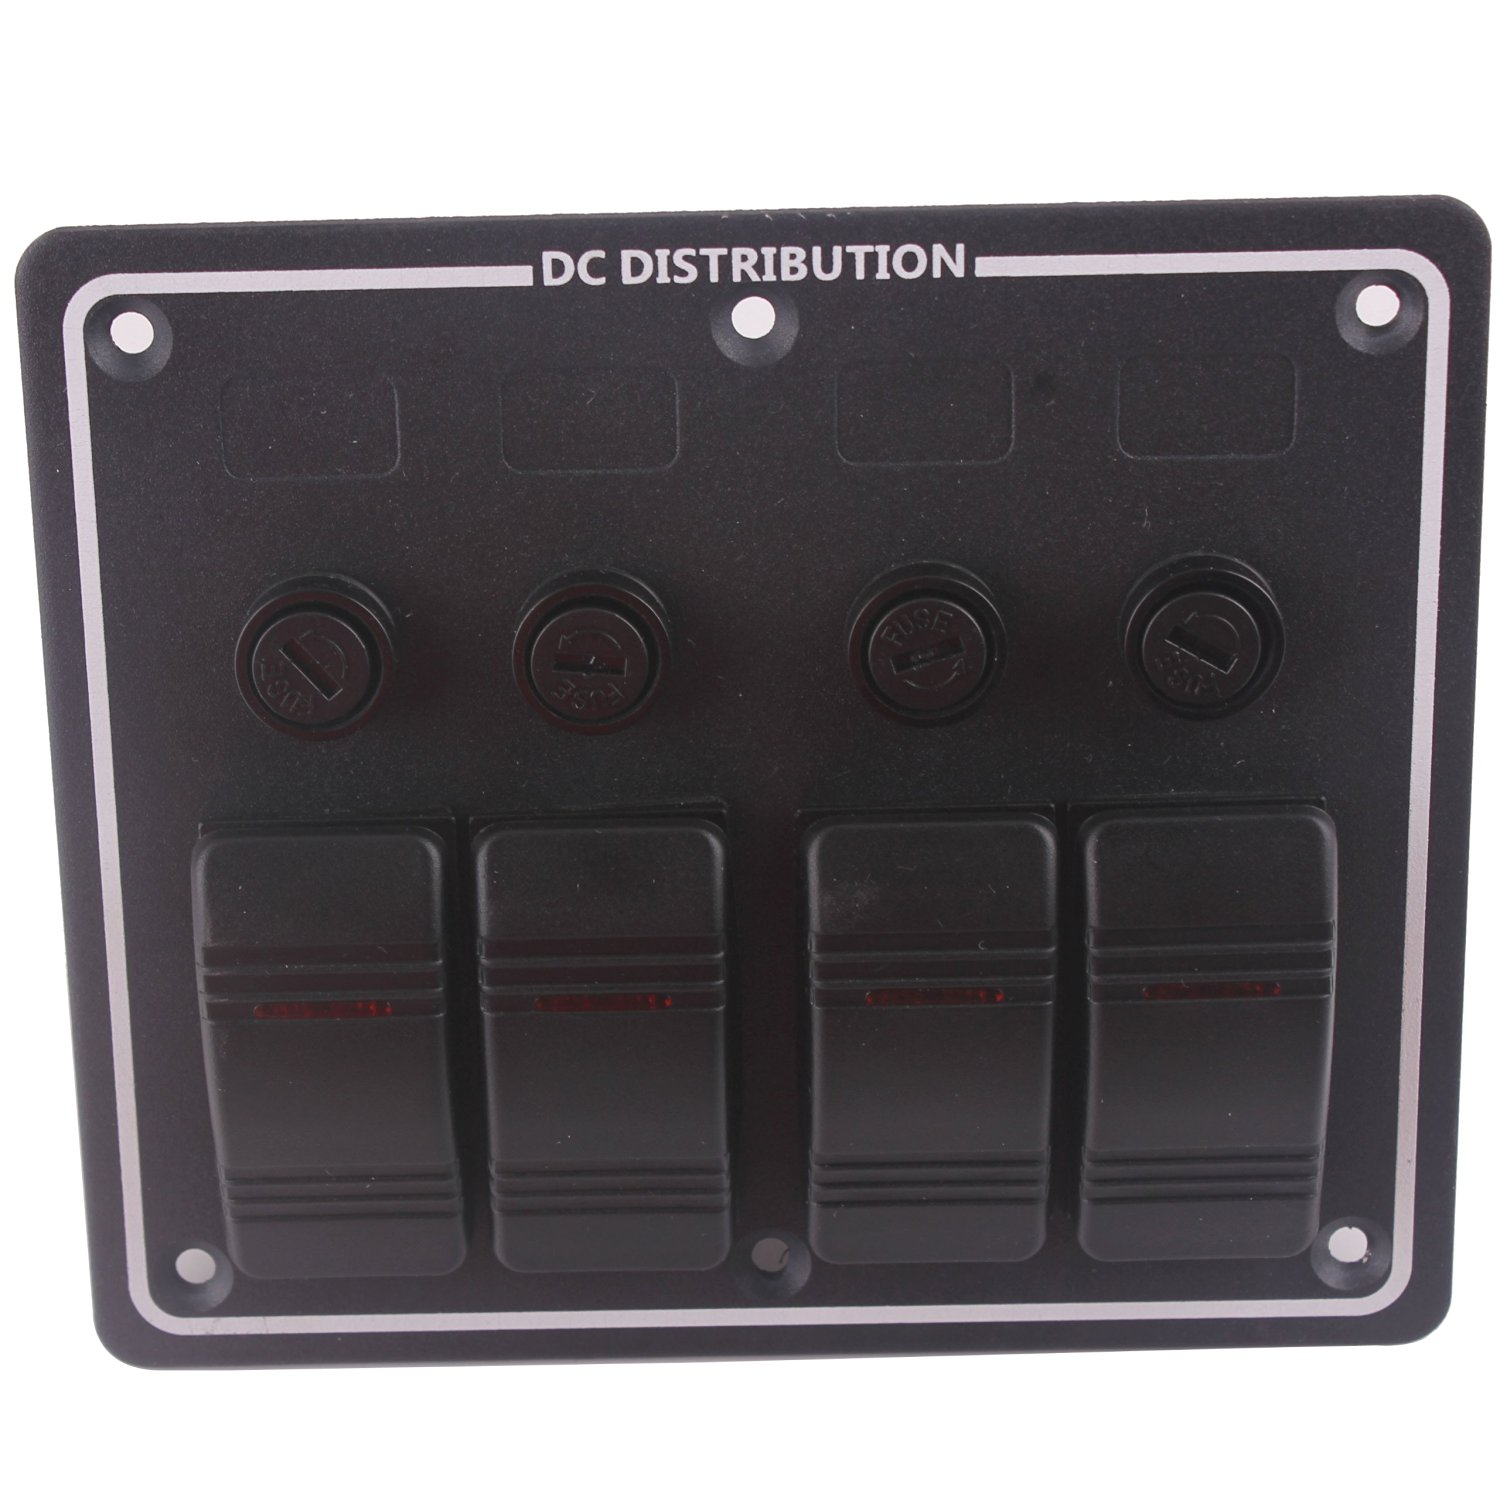 hight resolution of black 4 gang dc 12v led boat rocker switch panel circuit breaker with auto fuses vertically